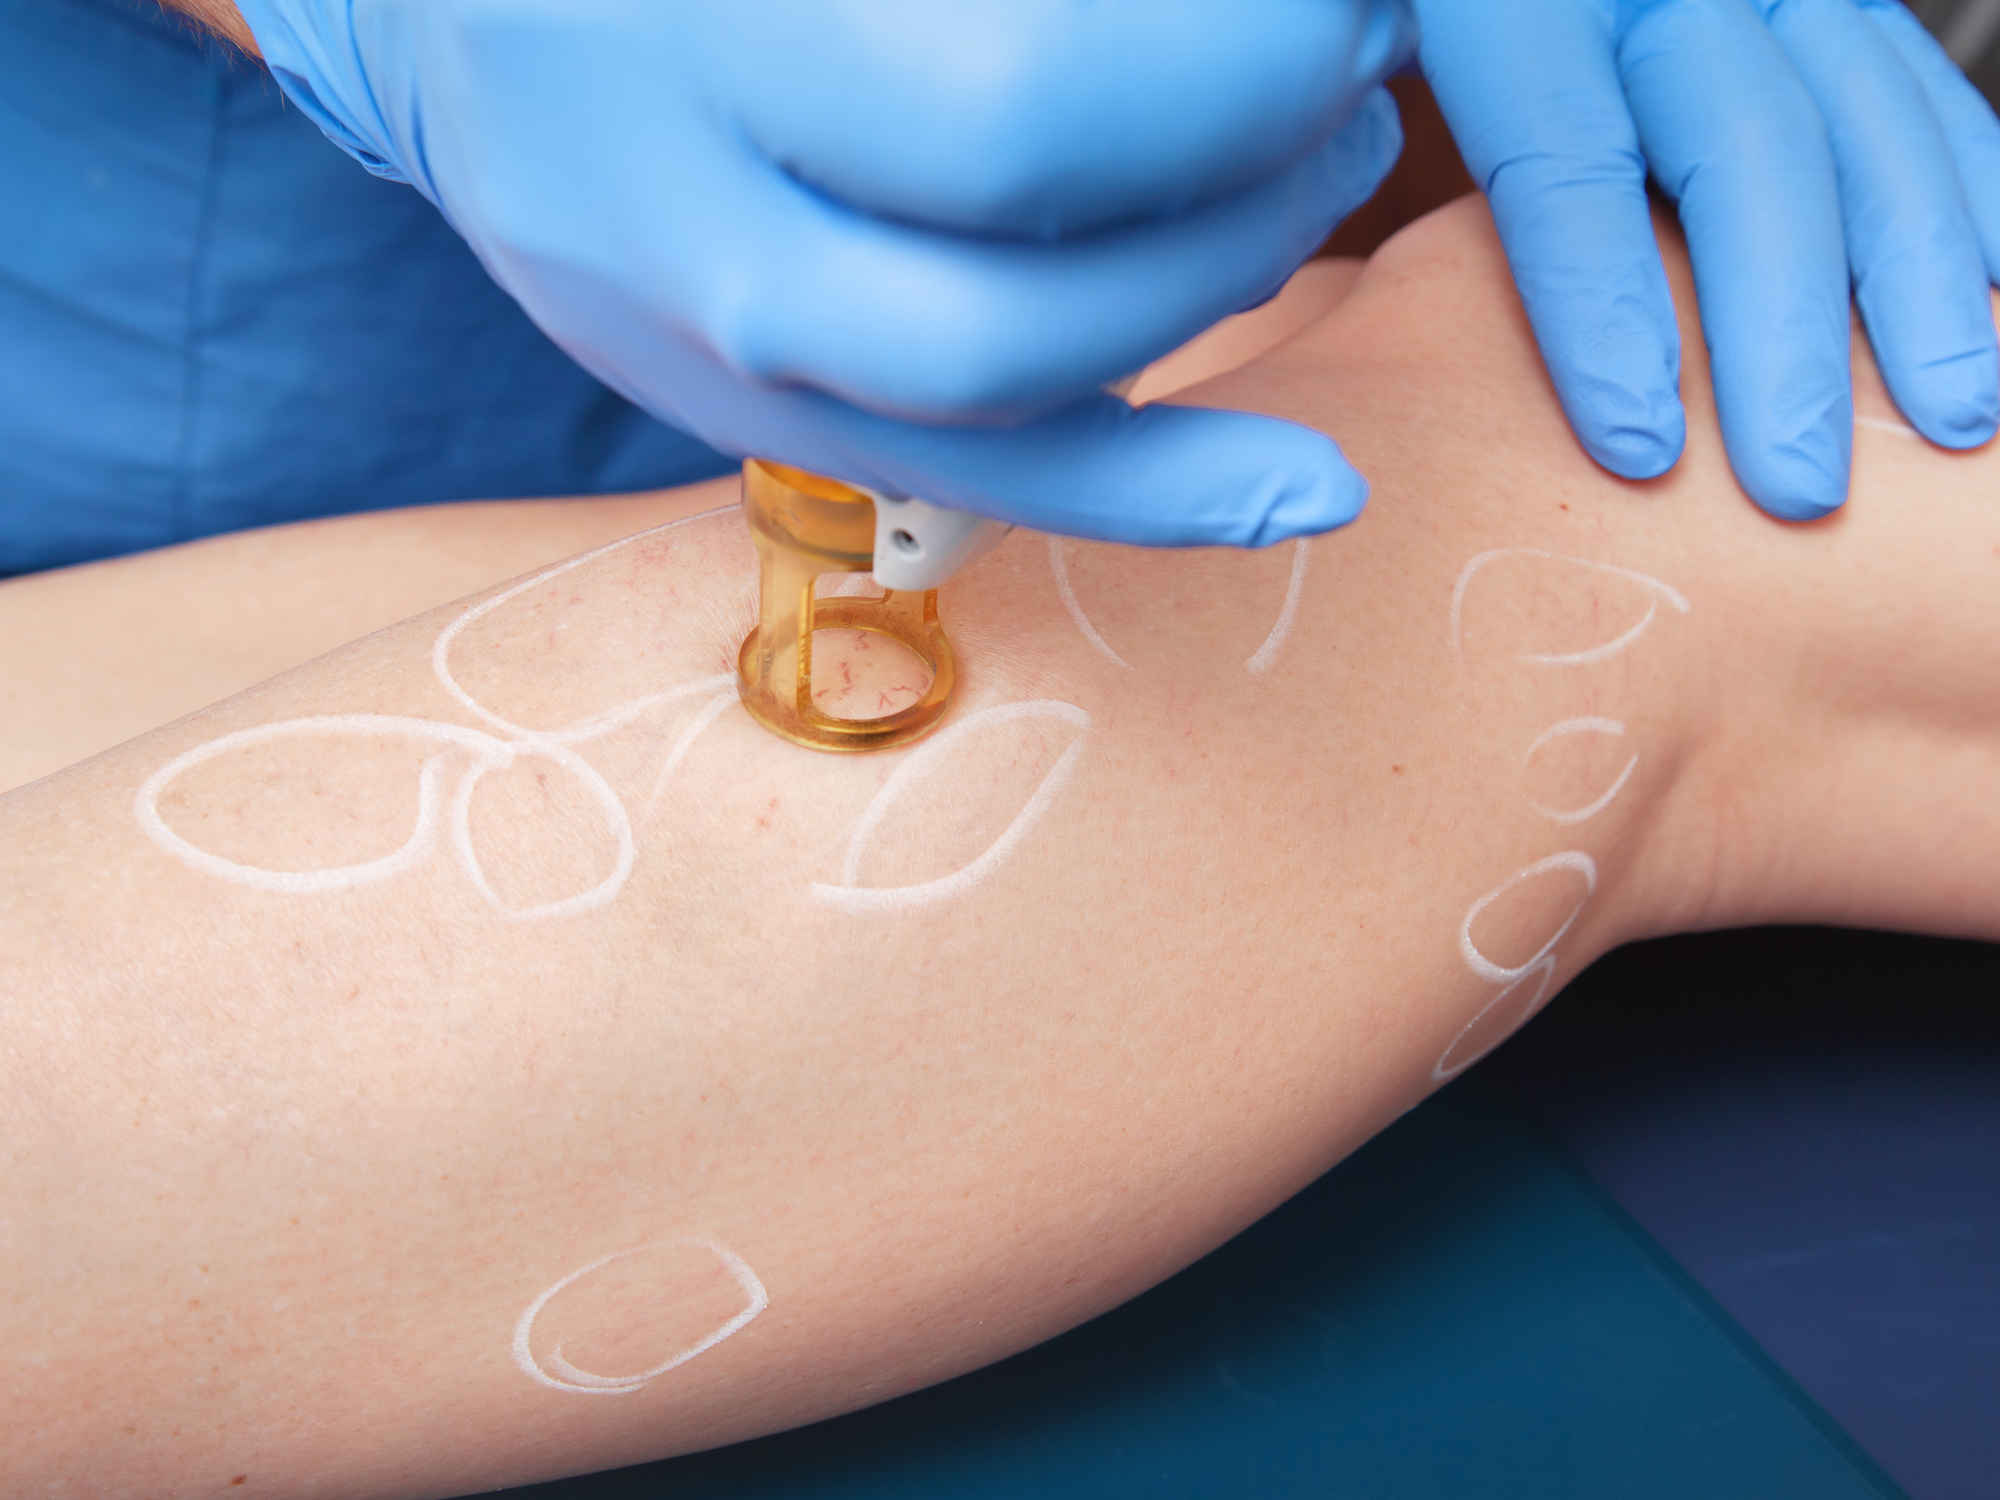 Is Laser Treatment for Varicose Veins Safe?